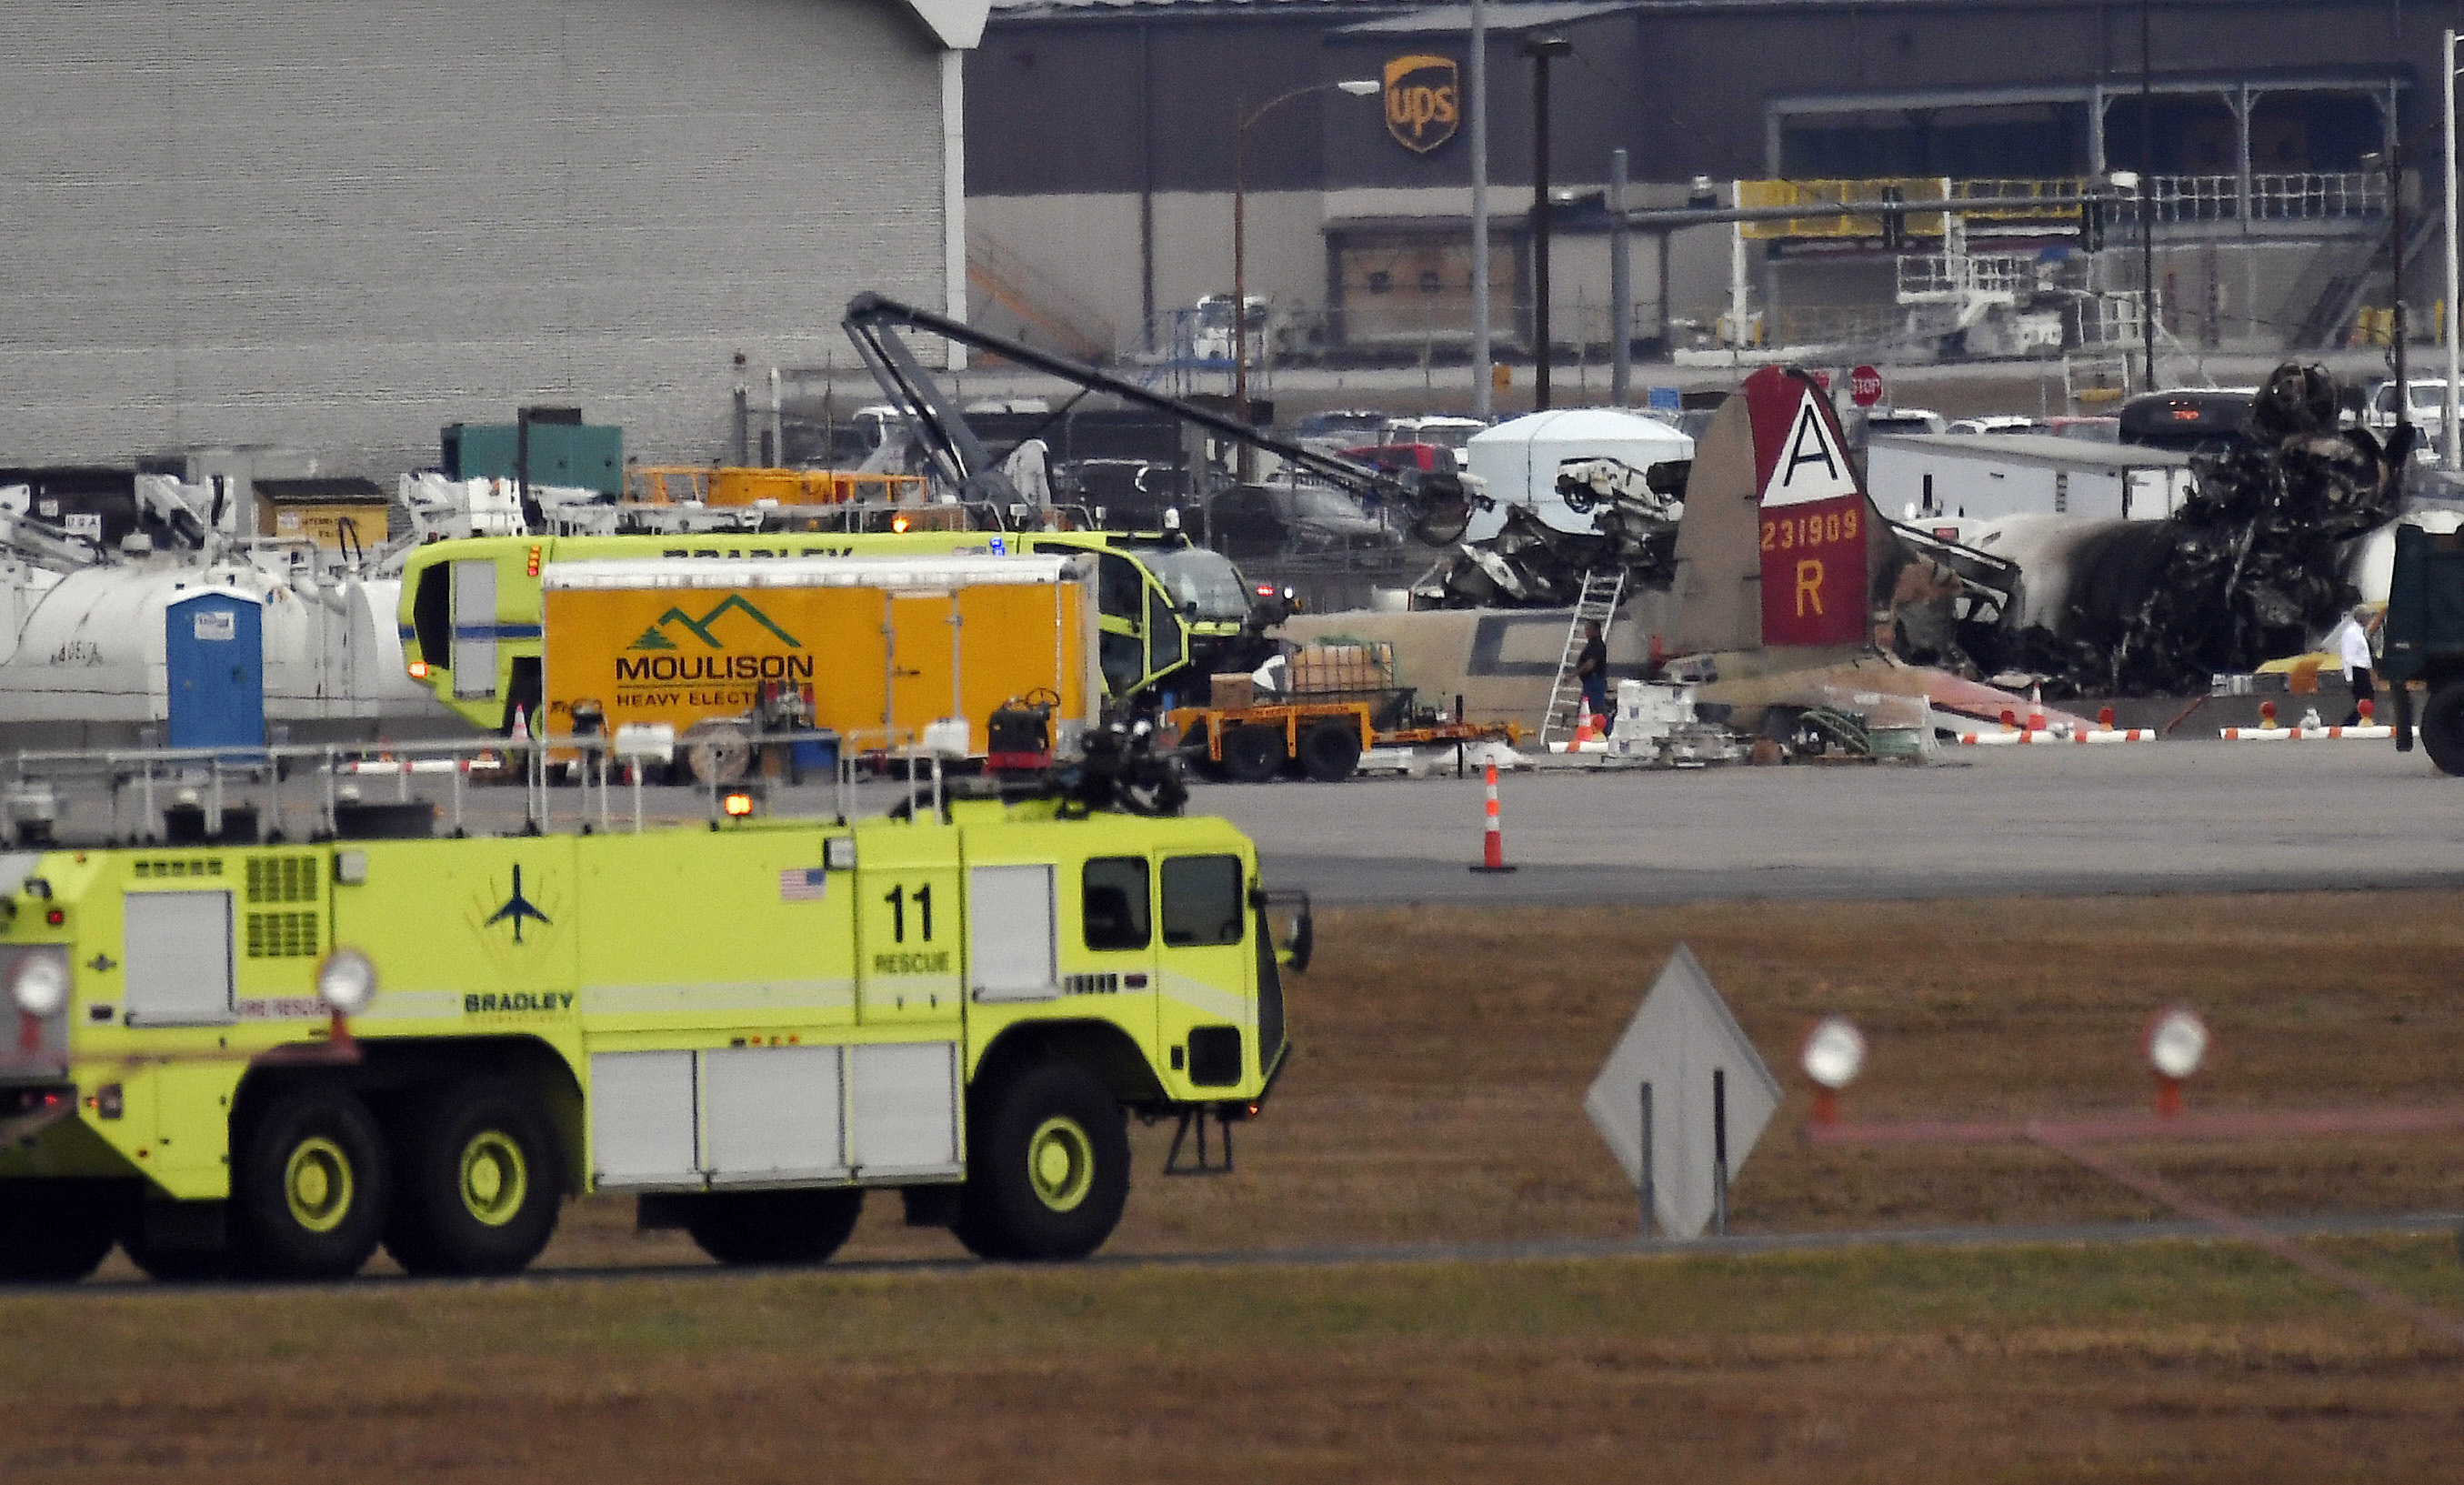 Emergency crews respond to a crash involving a World War II-era bomber B-17 plane at Bradley International Airport in Windsor Locks, Connecticut, on Oct. 2, 2019.